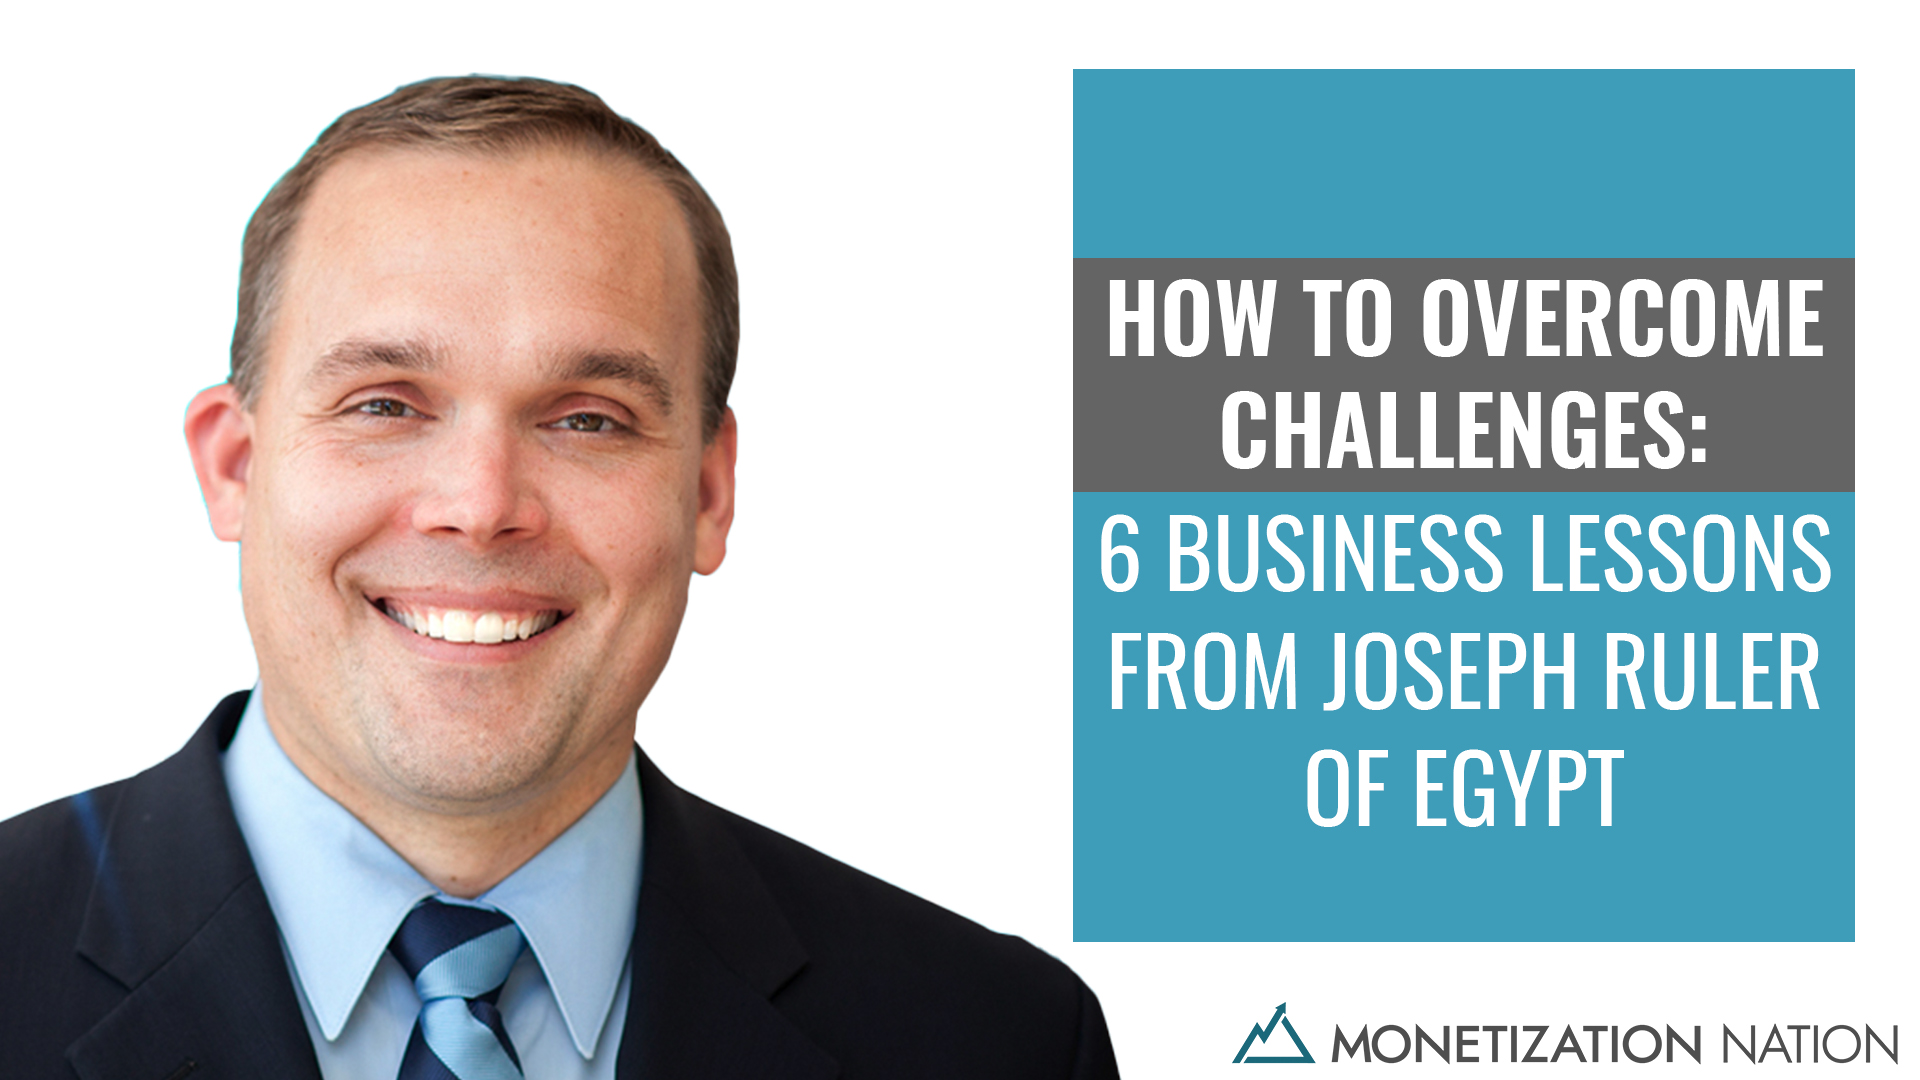 How to Overcome Challenges 6 Business Lessons From Joseph Ruler of Egypt (1)